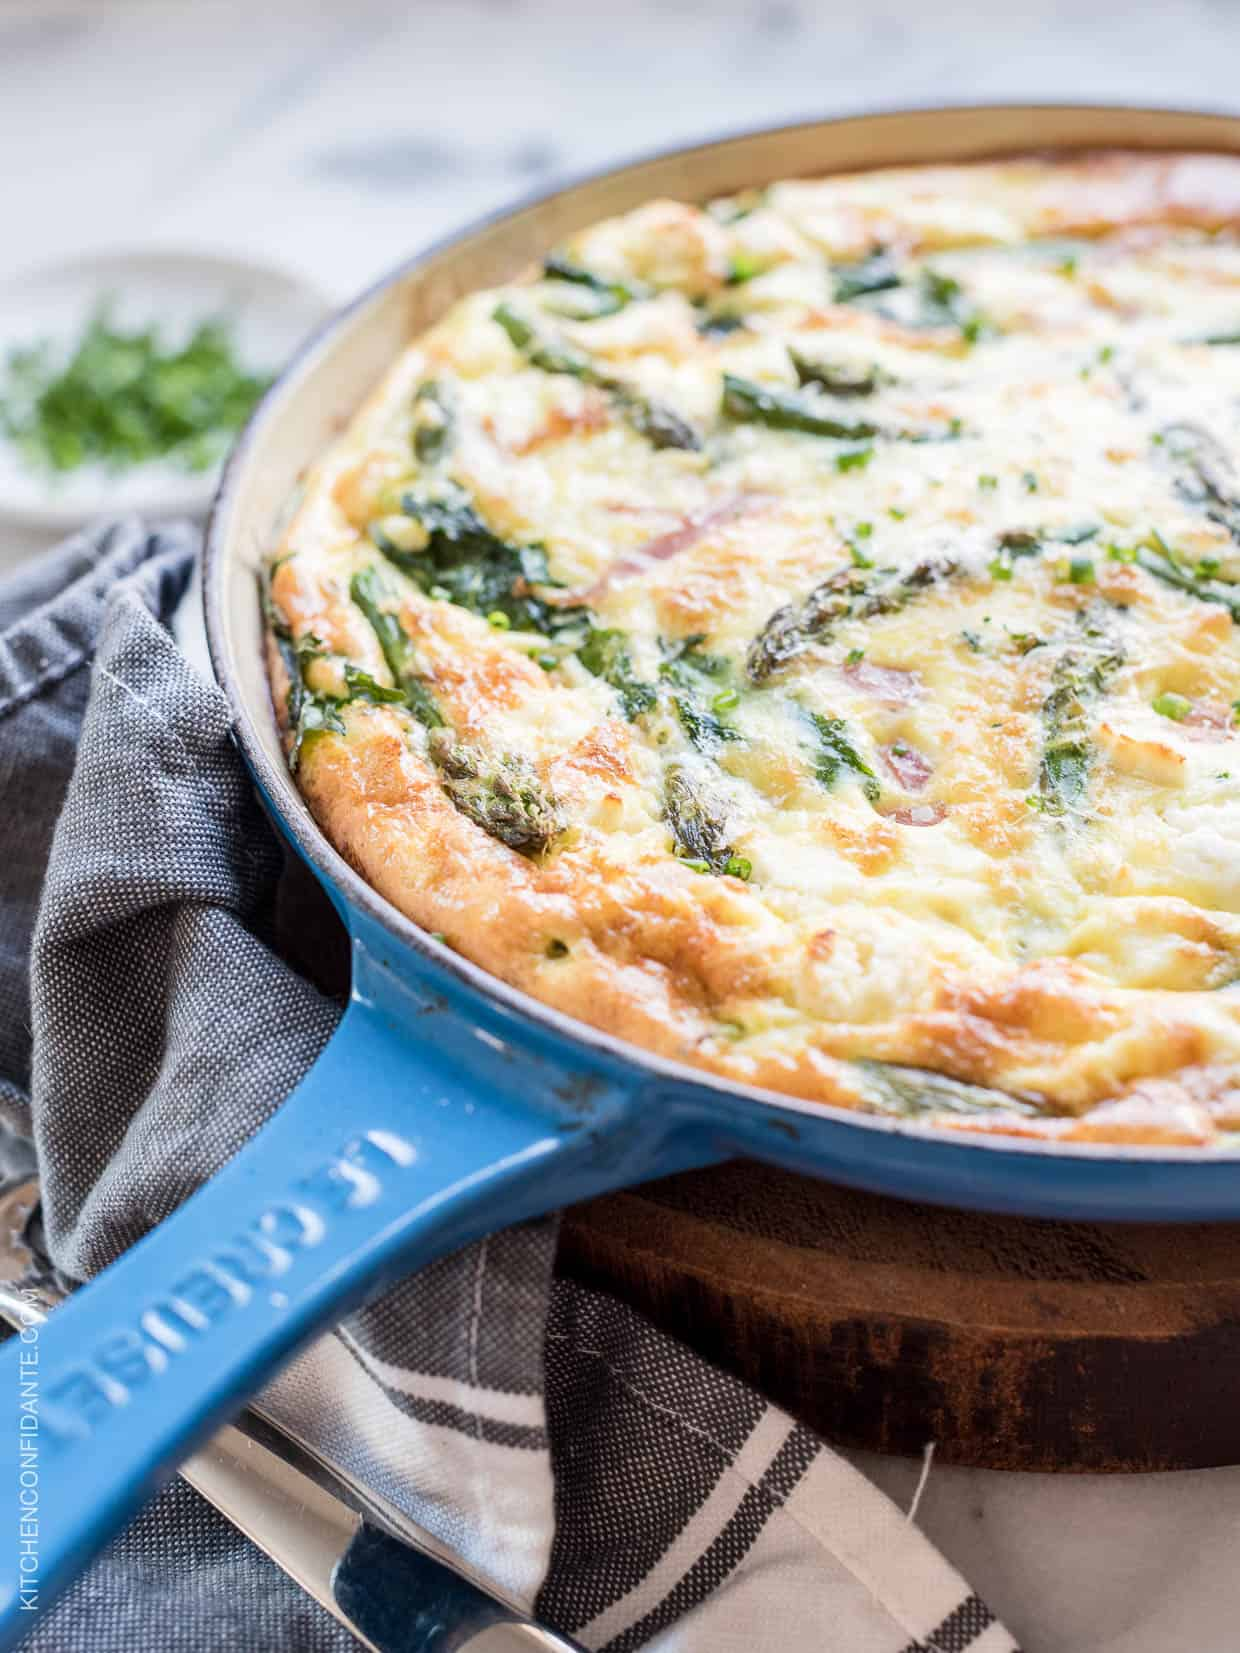 An Asparagus, Ham and Kale Frittata in a blue skillet.